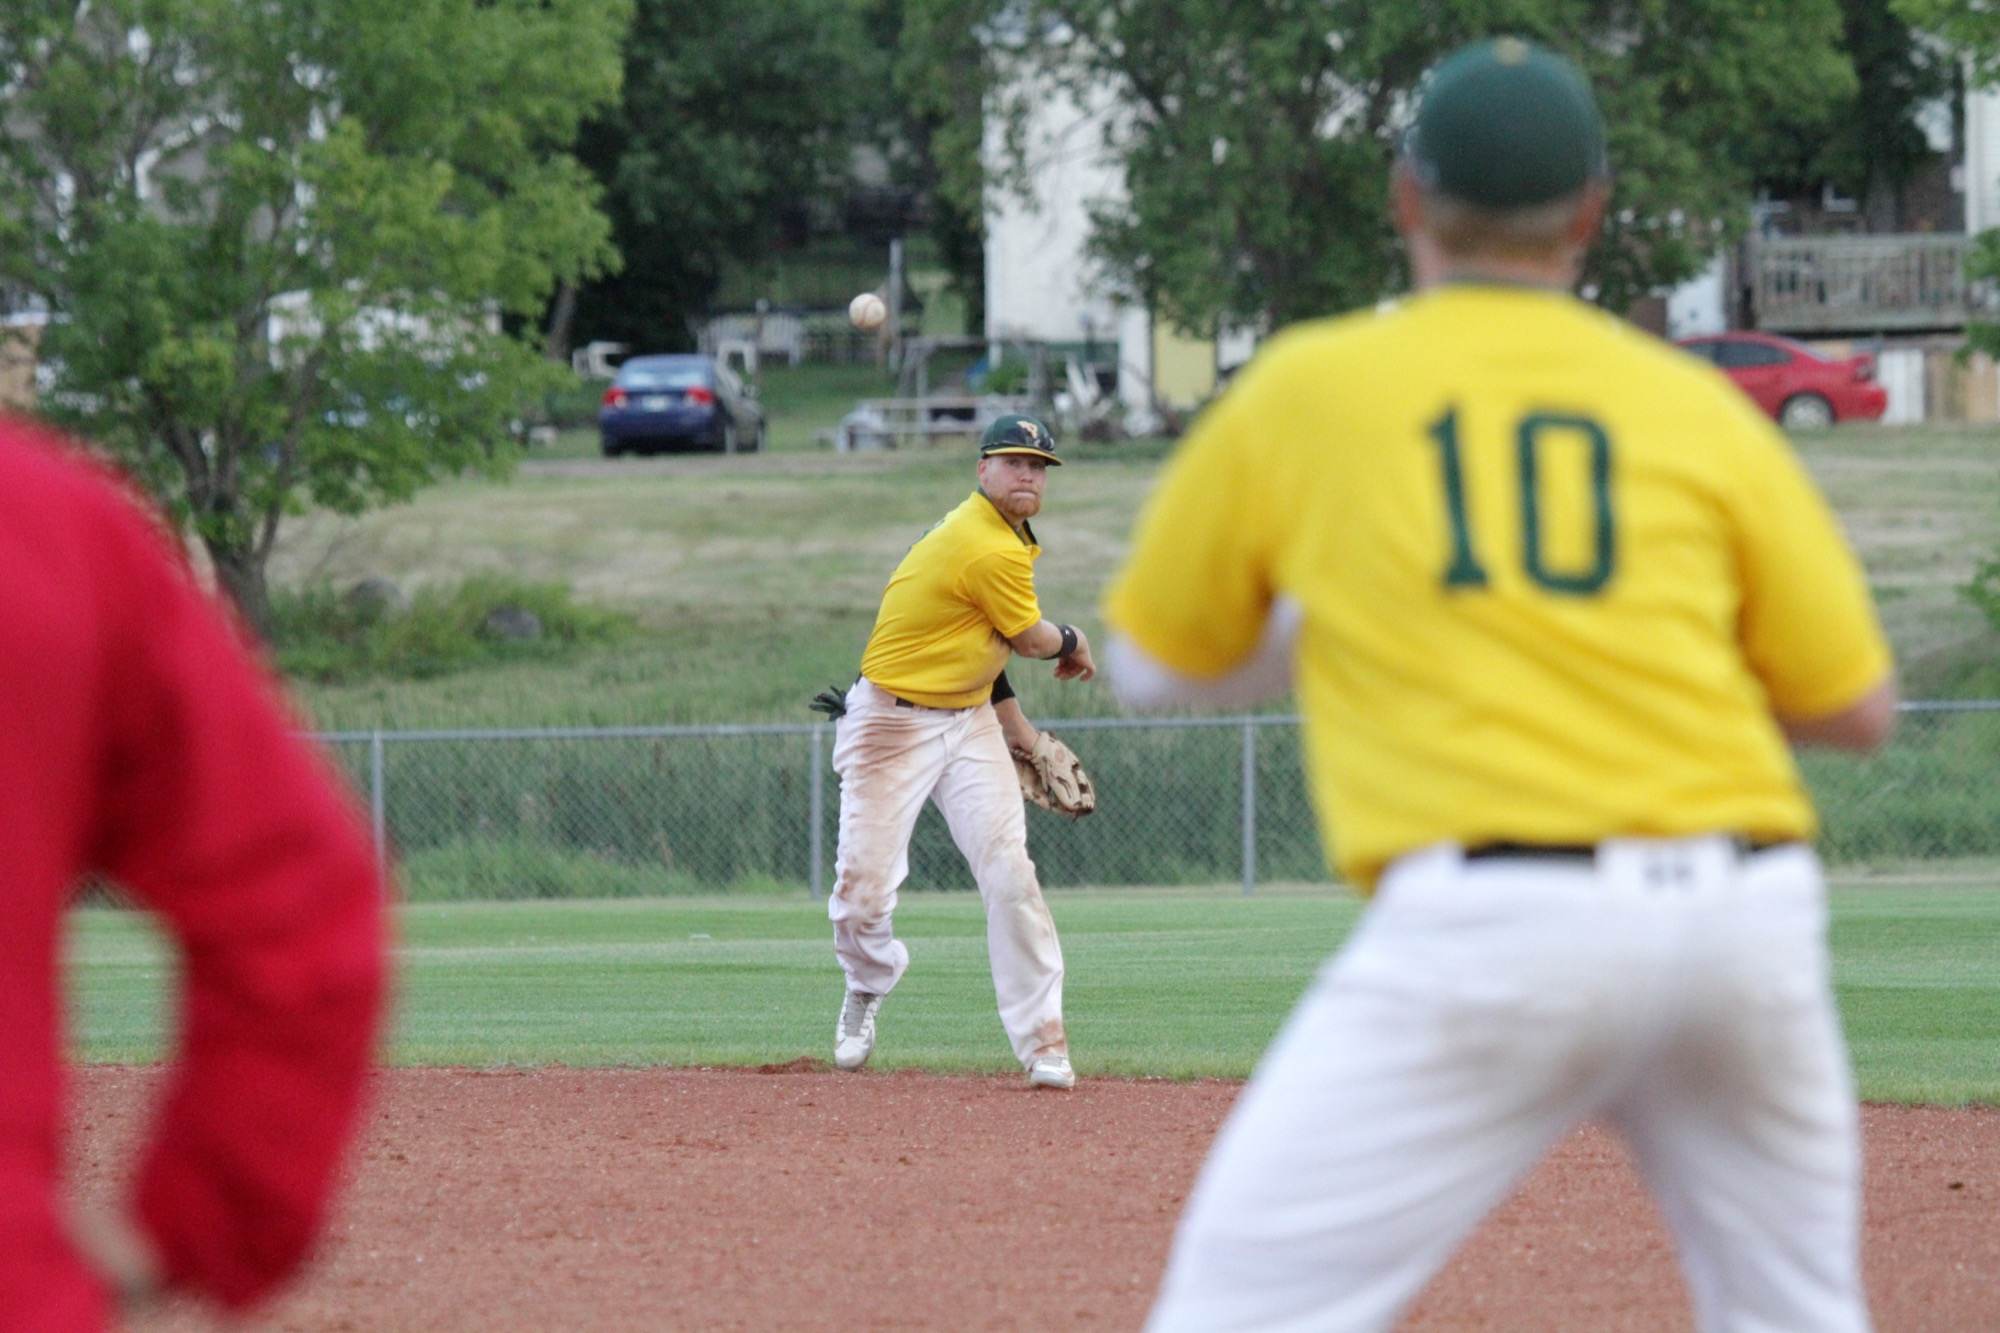 Young Guns shortshop Garrett Popplestone throws a Cardinals baserunner out at first during Game 3 of the best-of-five Andrew Agencies Senior AA Baseball League final at Sumner Field on Wednesday. (Thomas Friesen/The Brandon Sun)